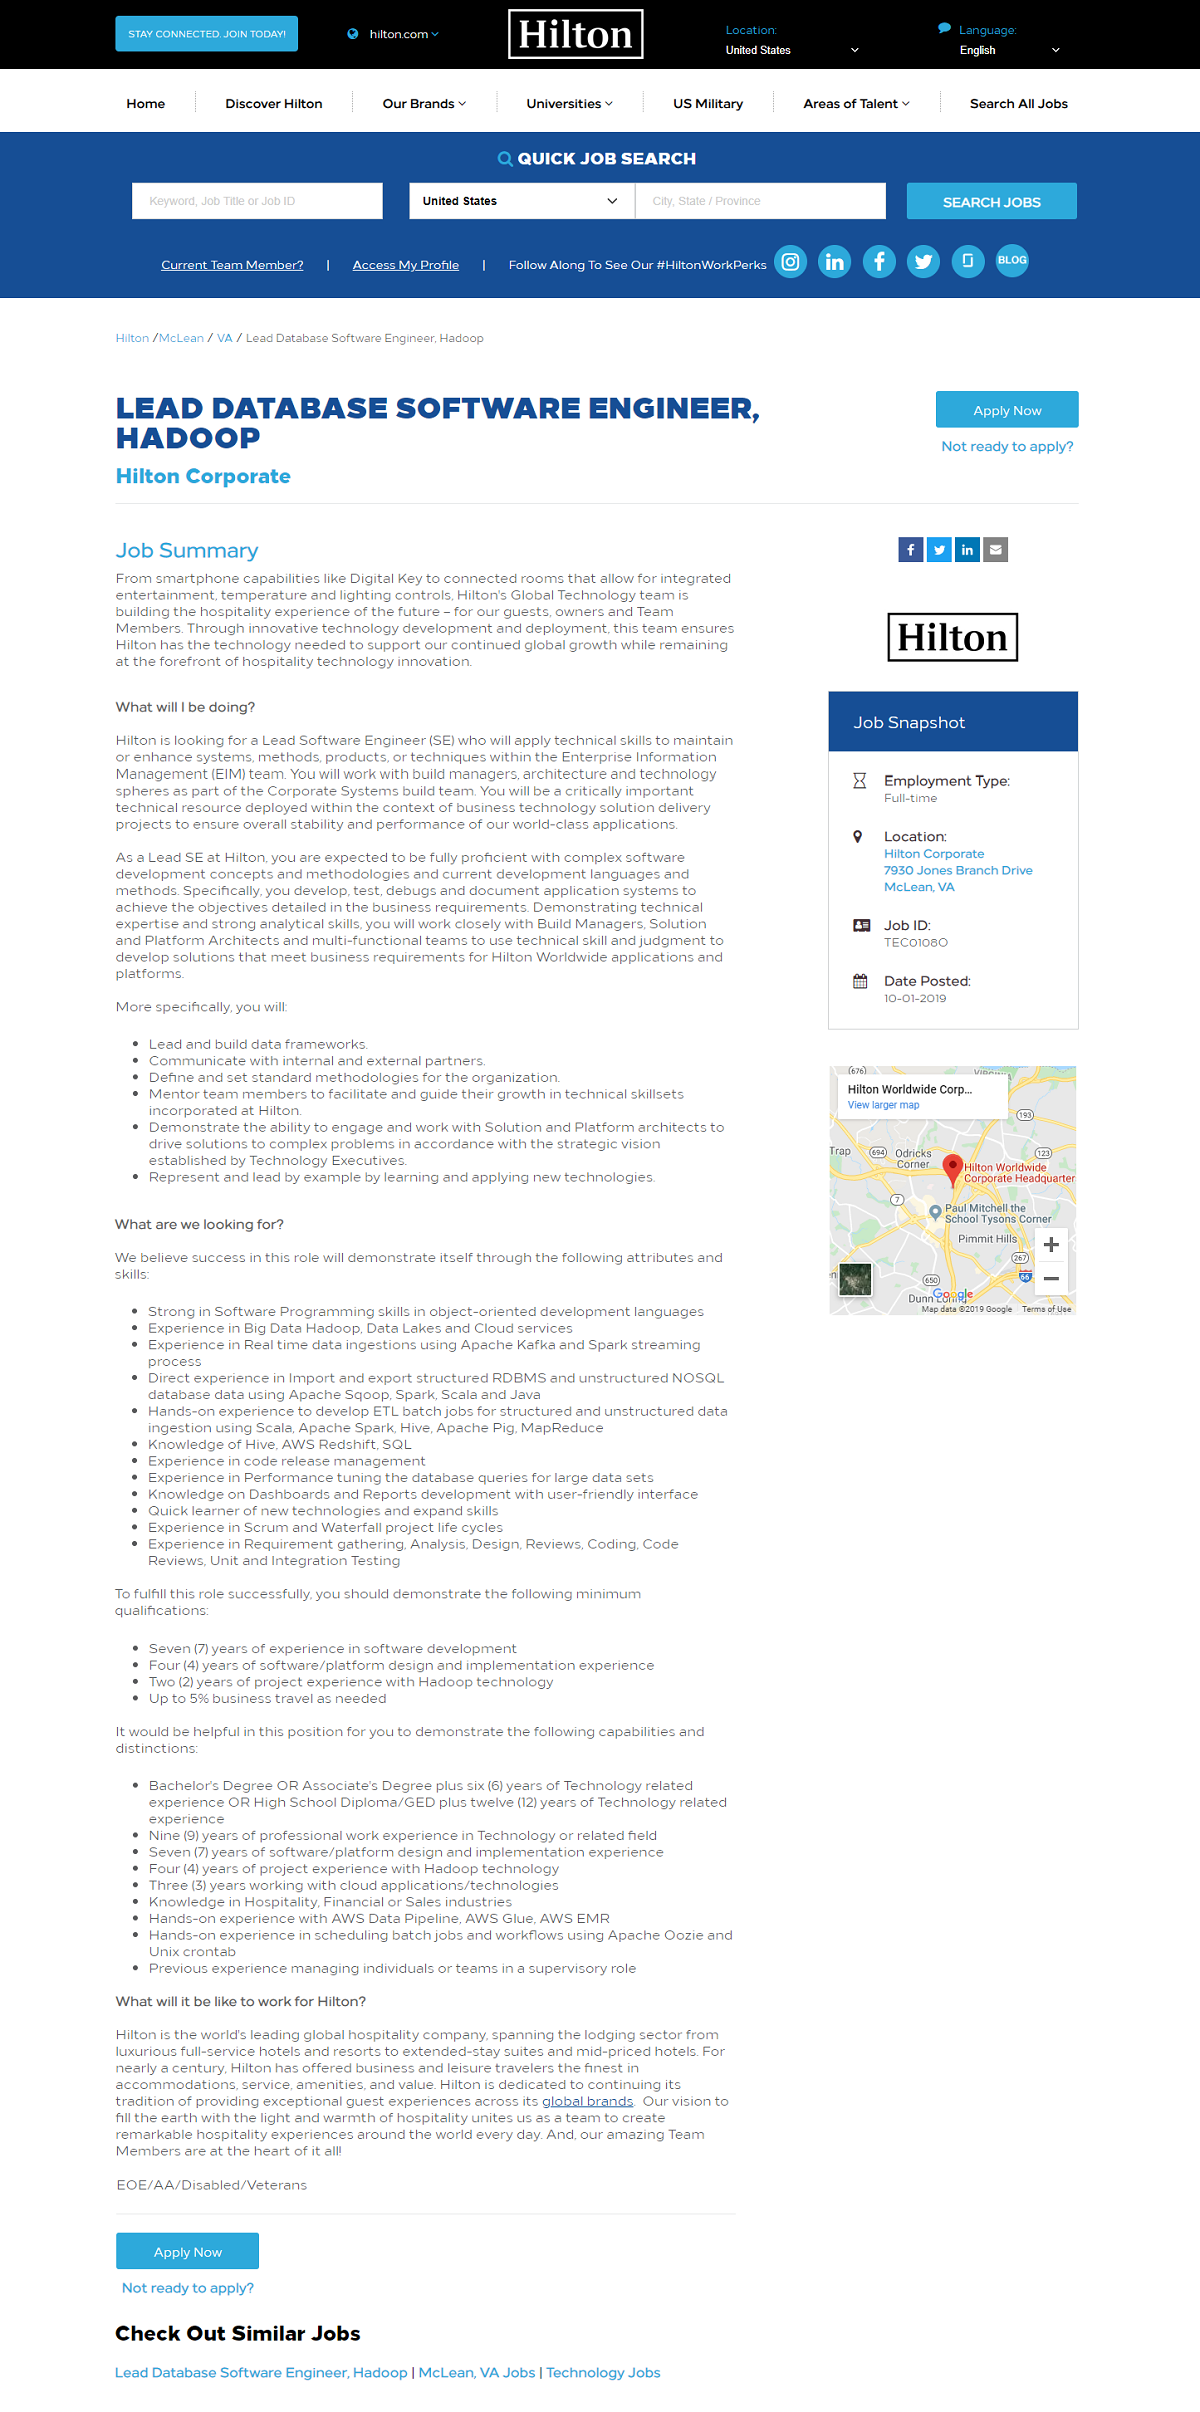 Hilton Taleo Enhanced Job Description After